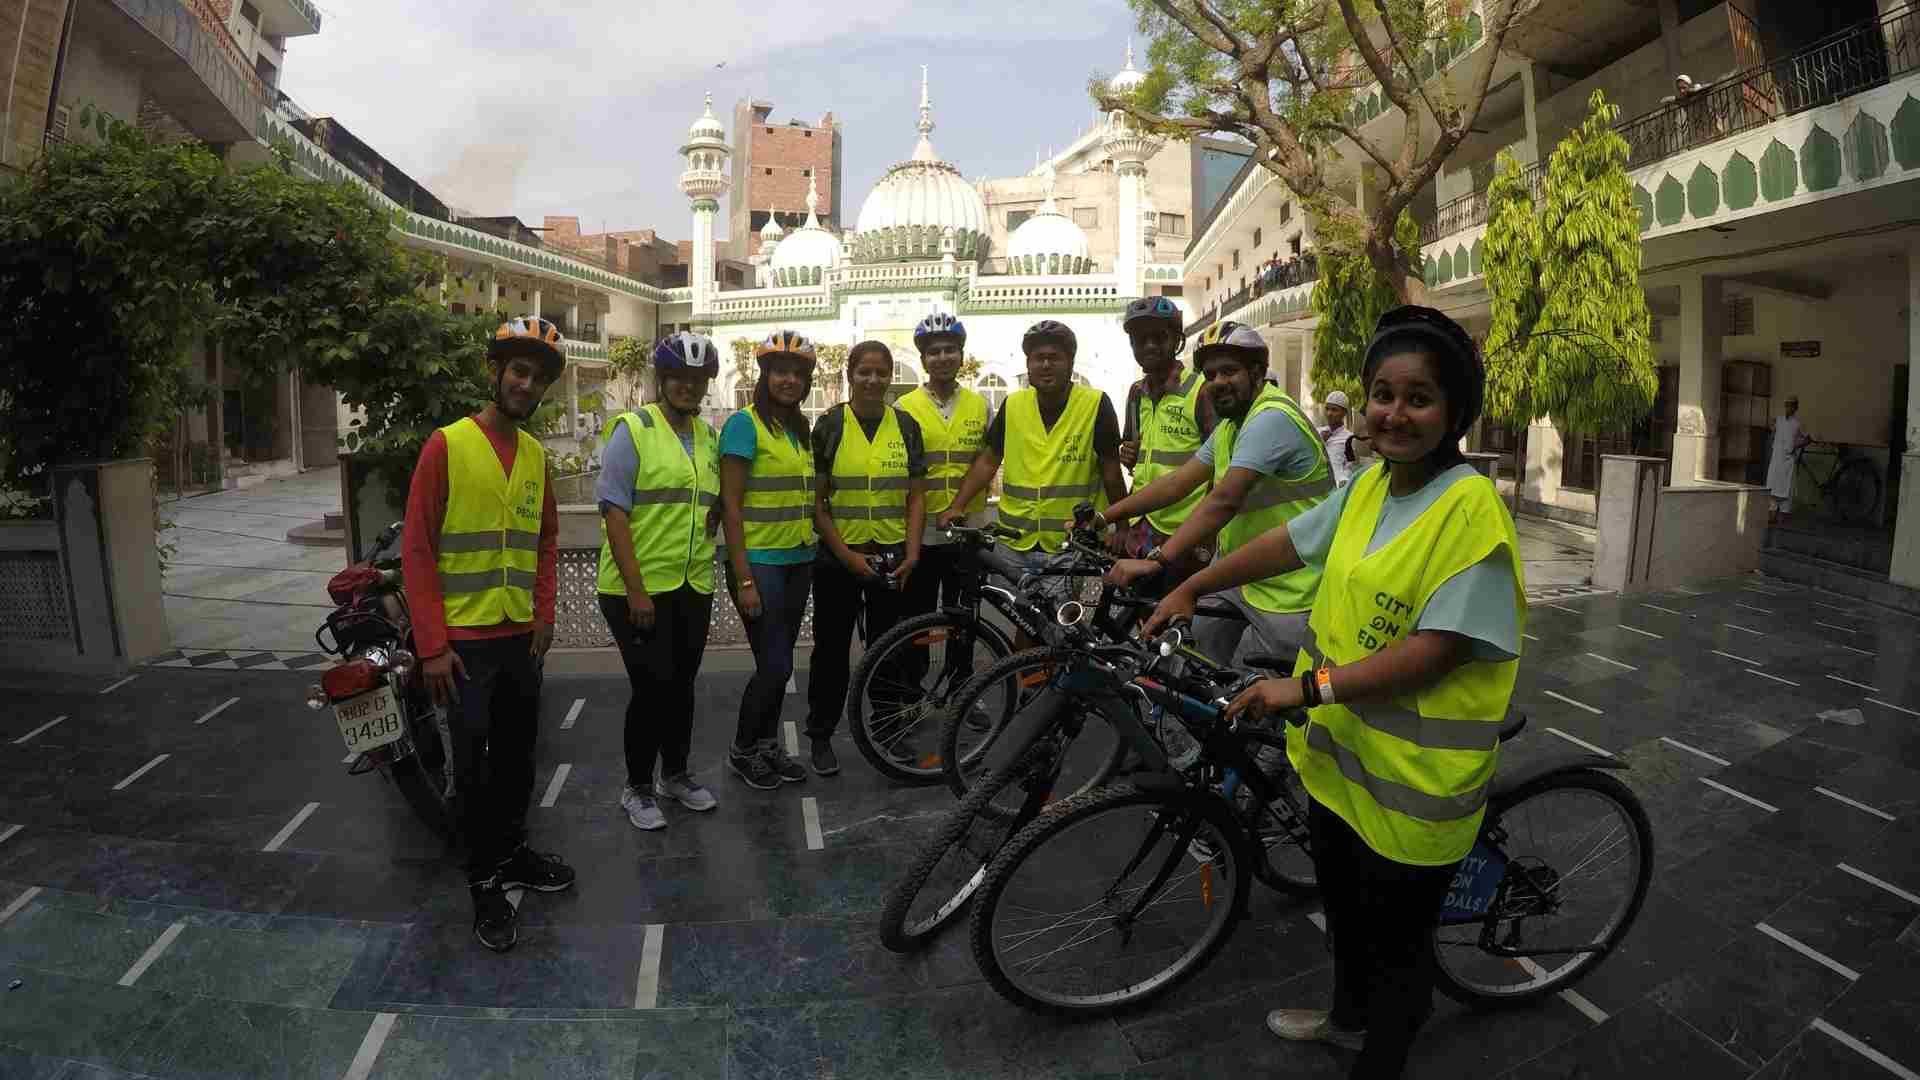 Stay On Skill Gang on our Amritsar Heritage Bicycle Tour